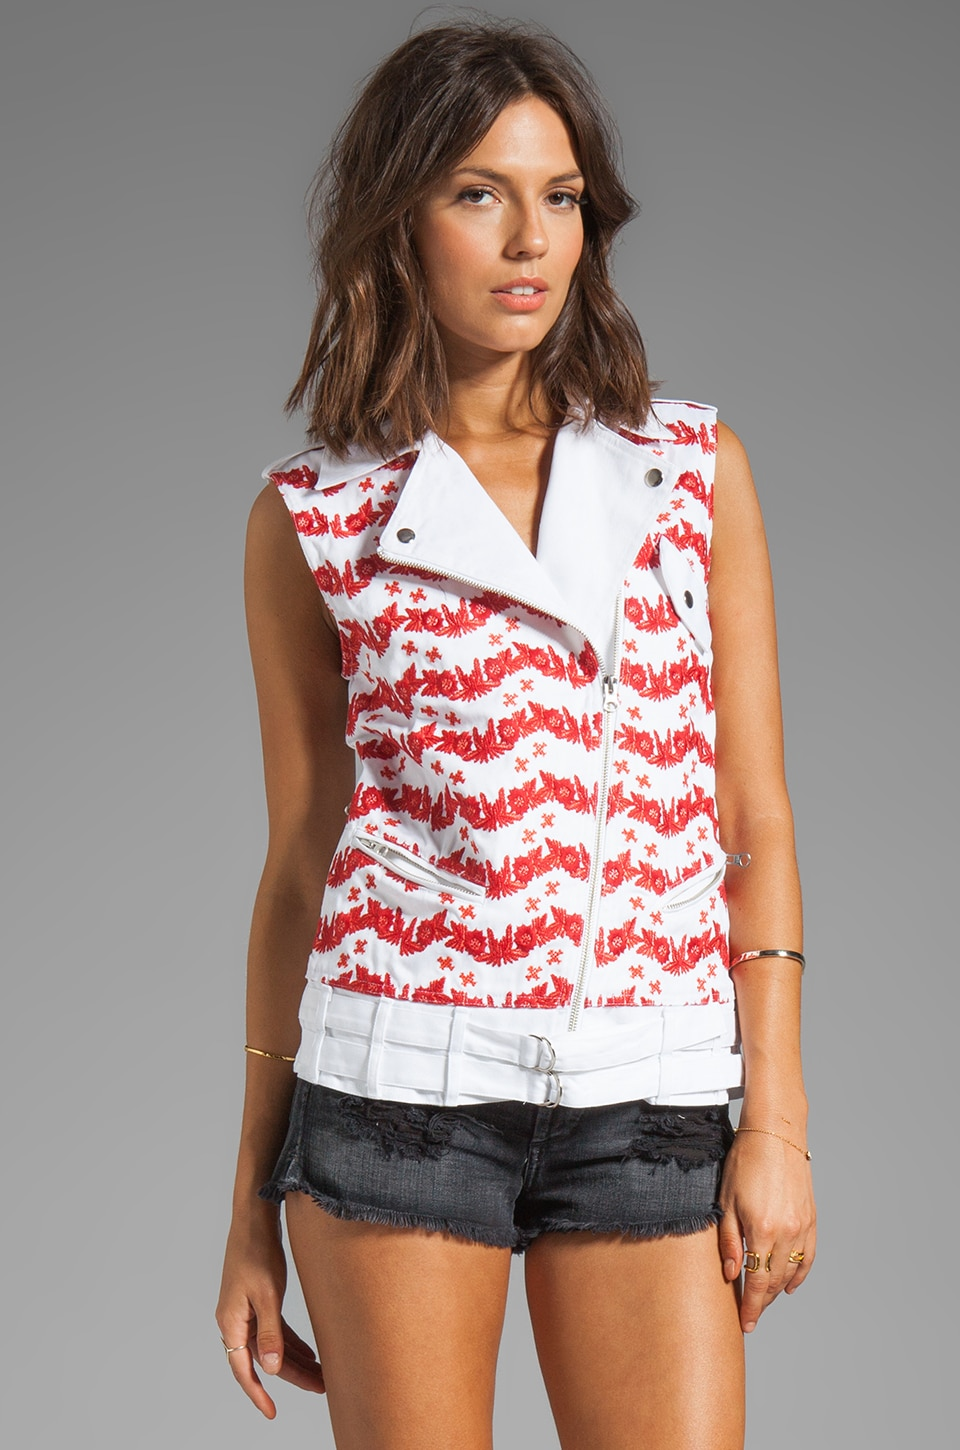 Rebecca Minkoff Jodi Vest in Burnt Orange